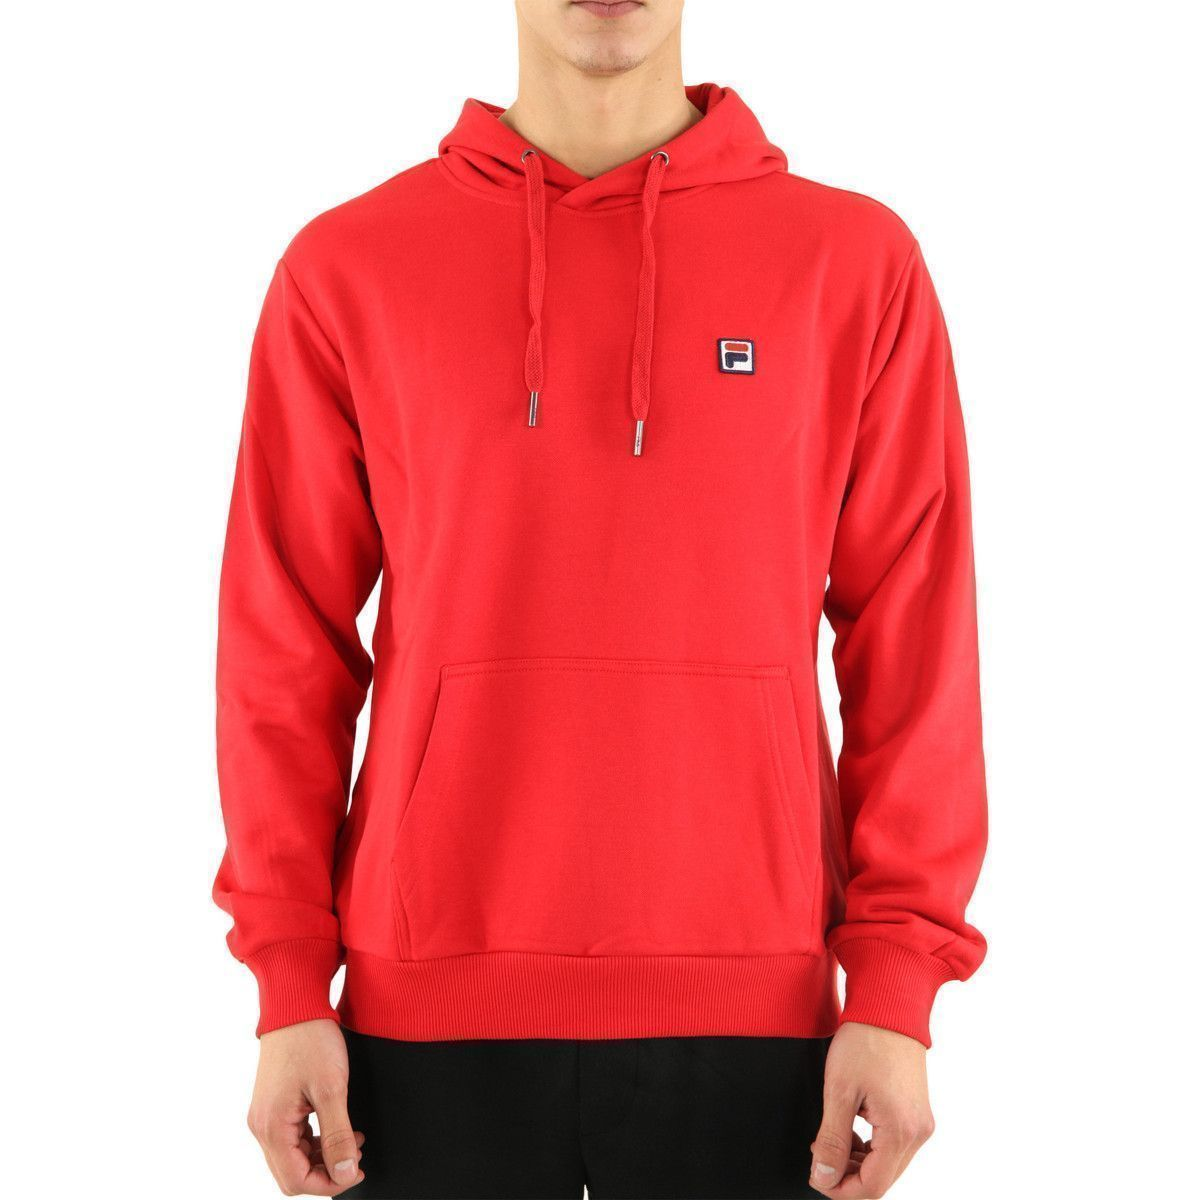 37111 VICTOR HOODY:ROUGE/COTON/COTON//Rouge